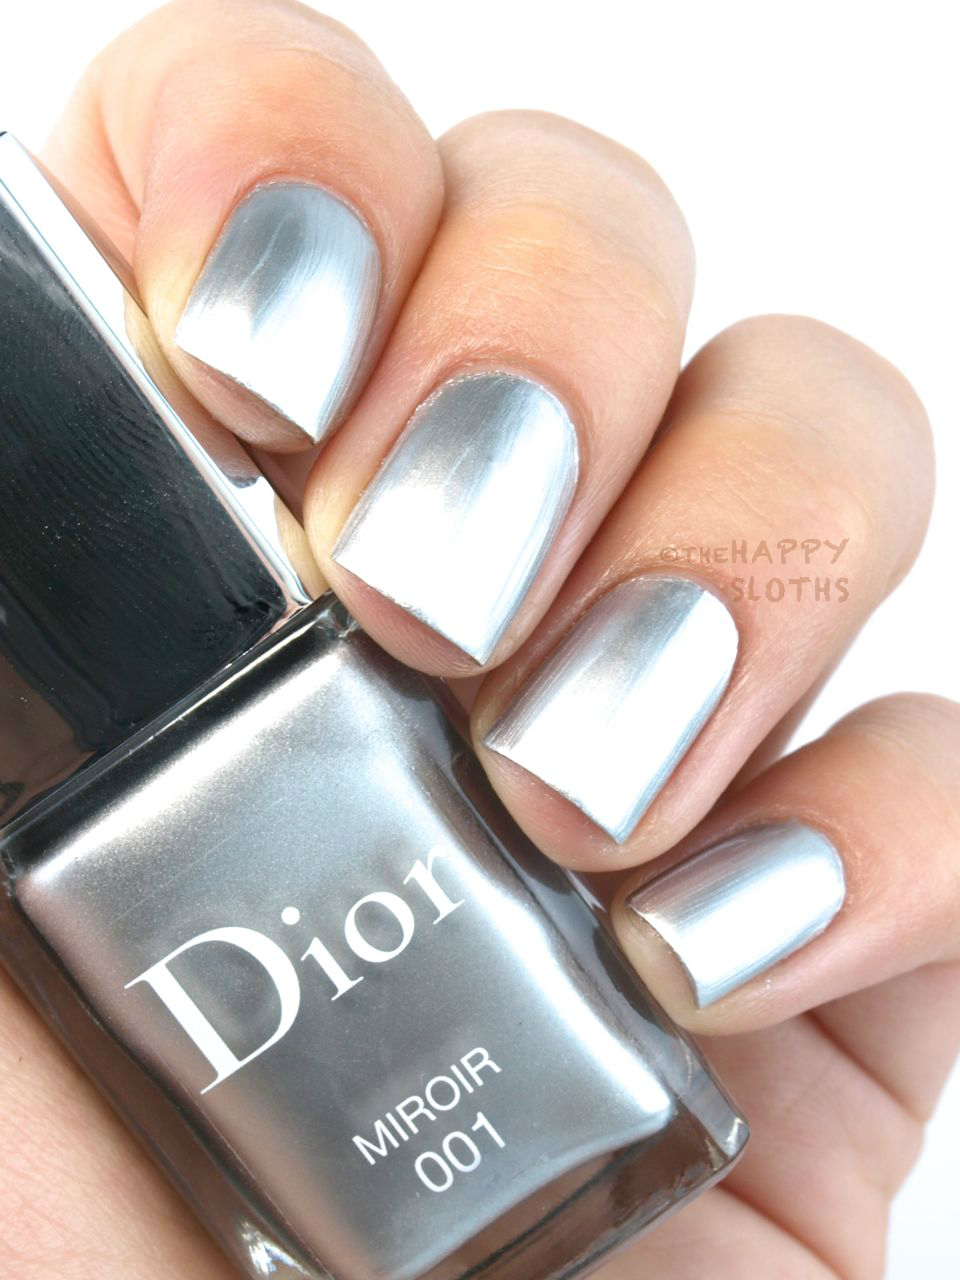 Dior fall 2015 dior vernis in 791 darling blue 001 for Vernis a ongle miroir